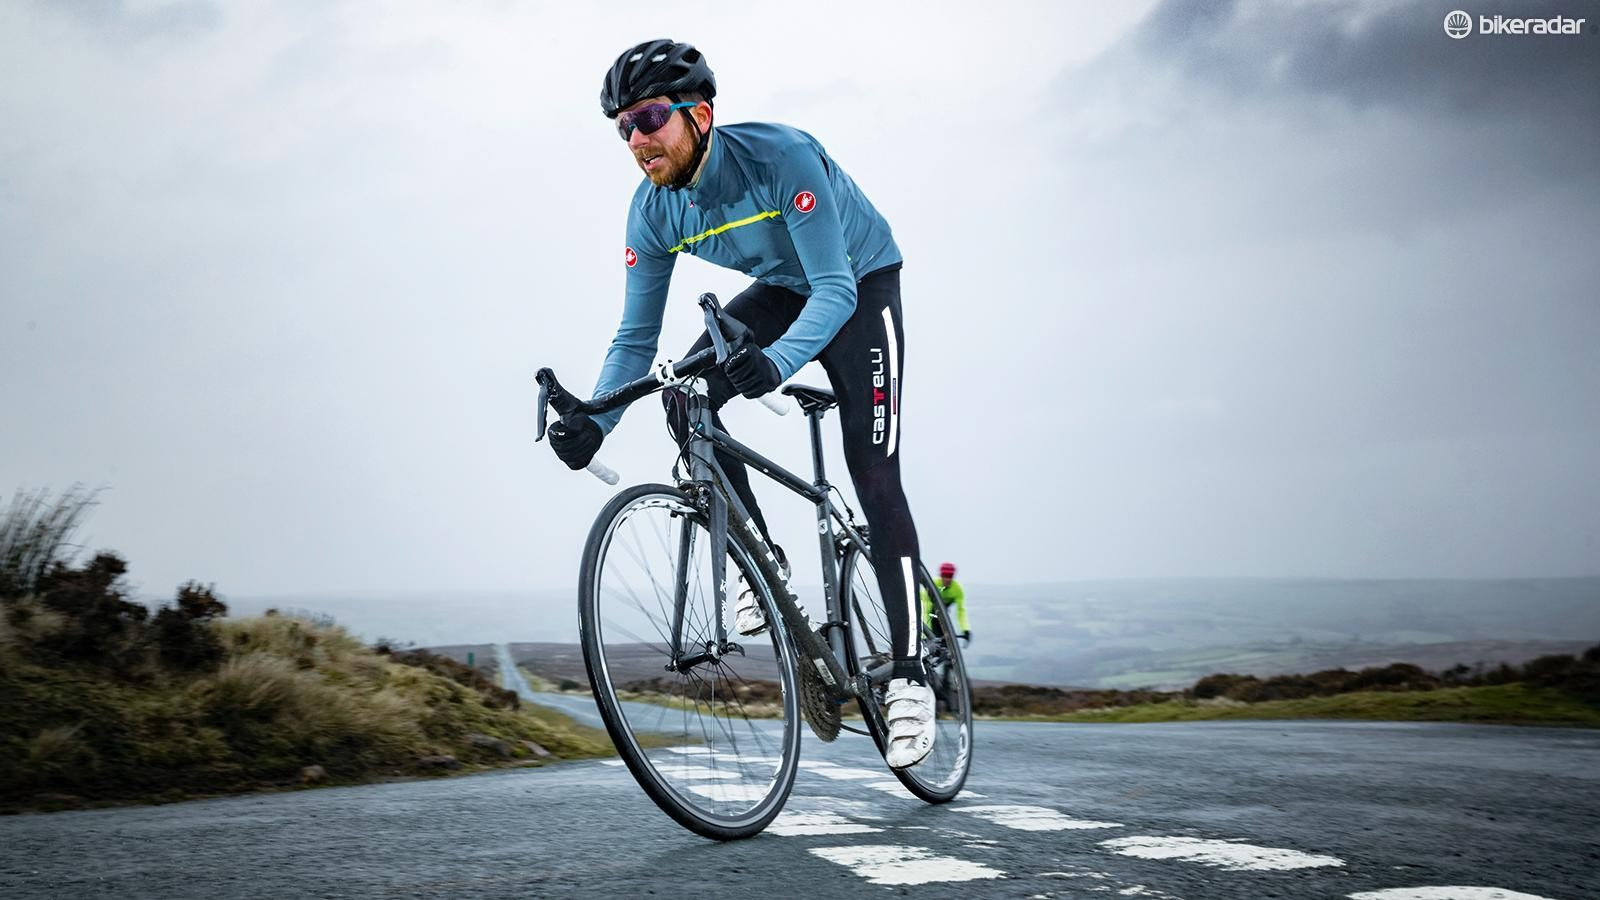 A decent road bike doesn't need to cost you the world